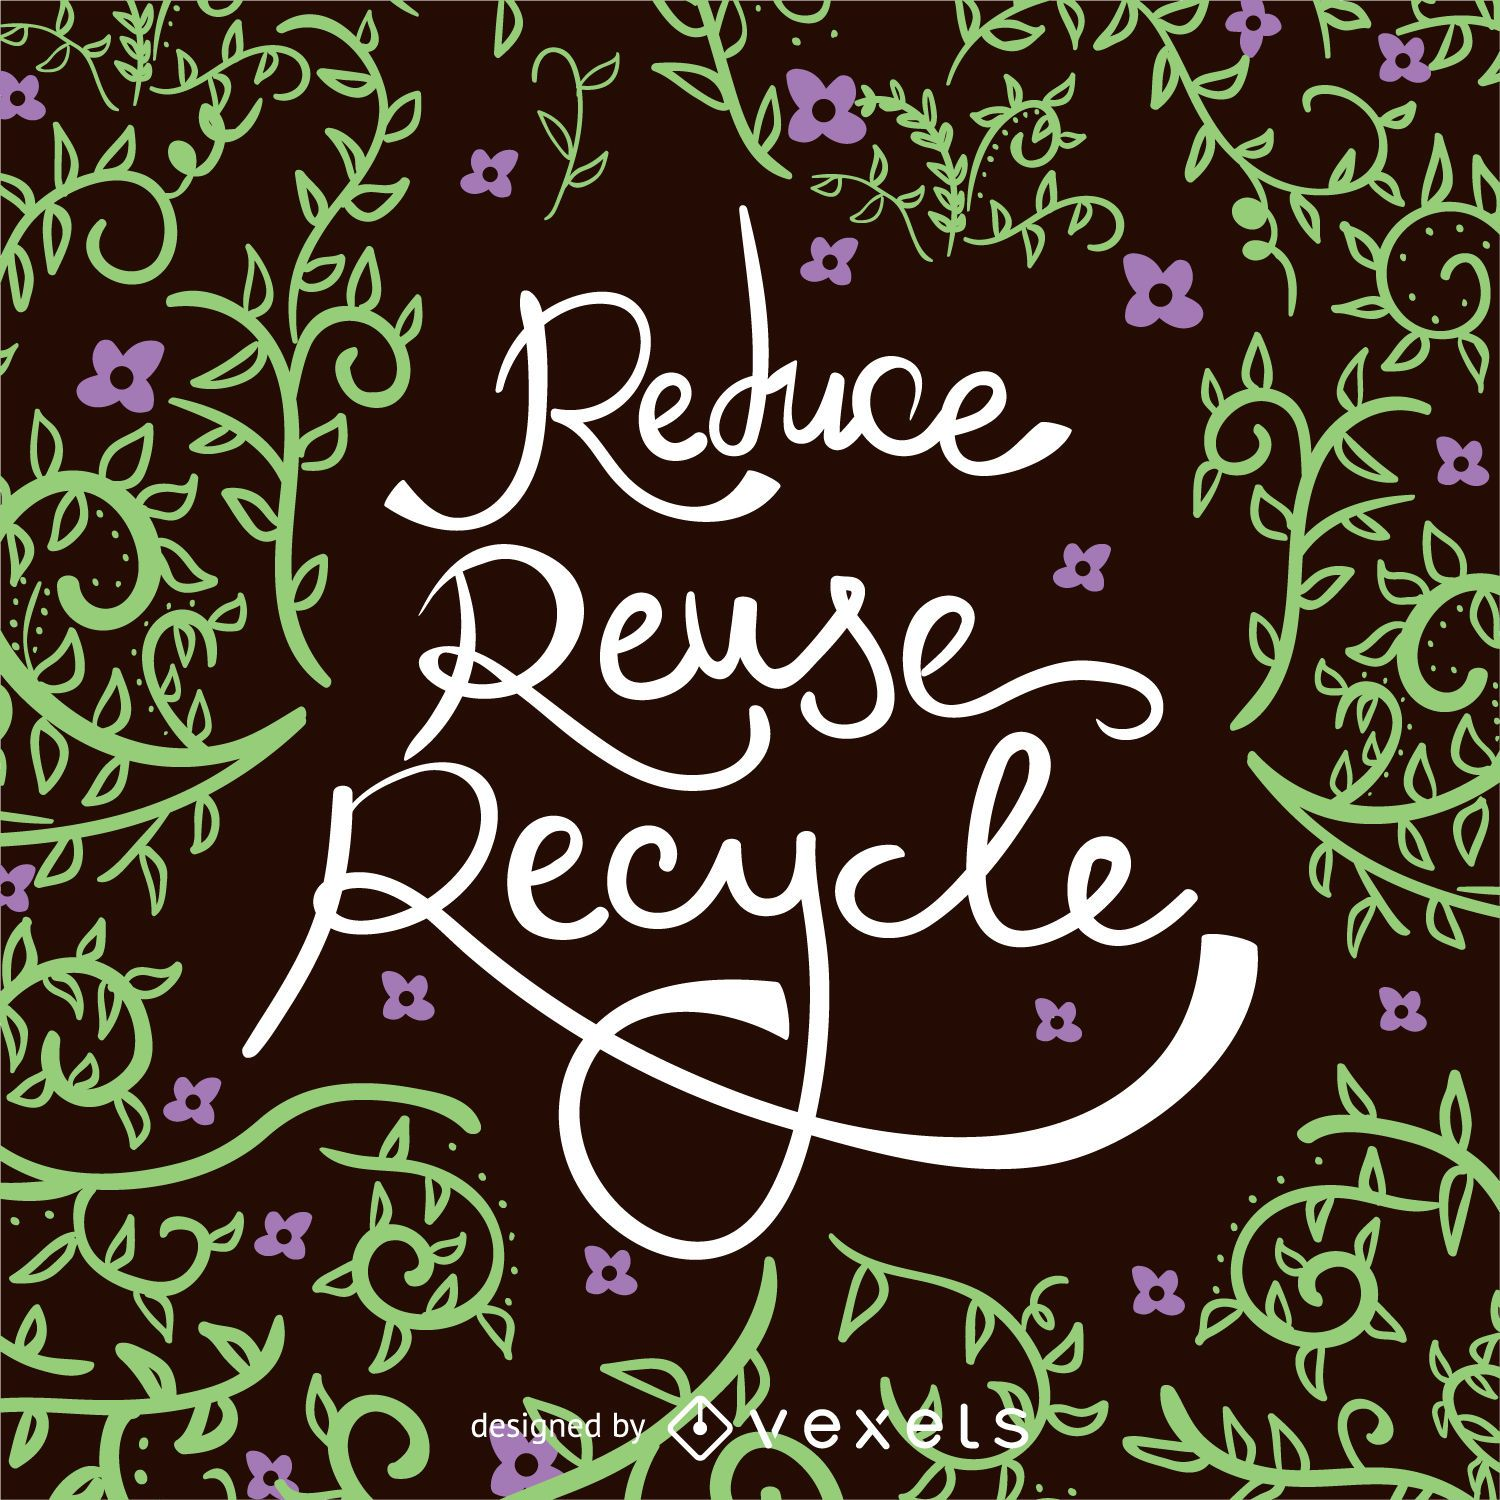 Reduce Reuse Recyle Earth Day poster